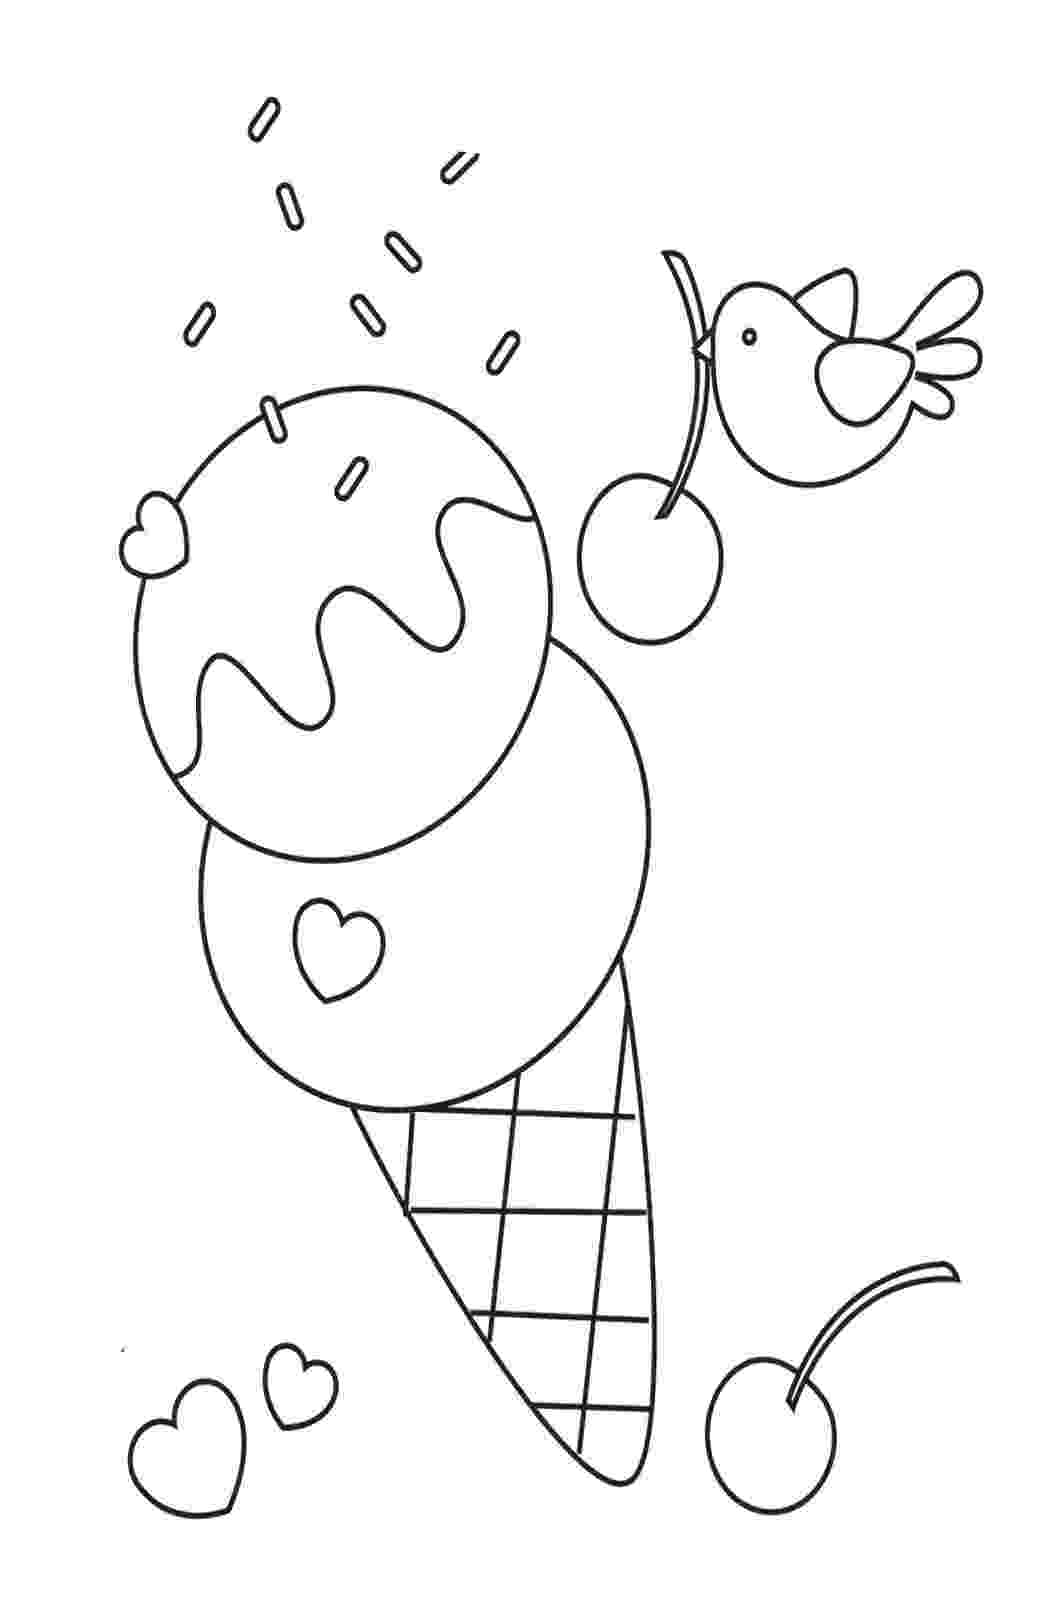 coloring sheet ice cream free printable ice cream coloring pages for kids sheet coloring cream ice